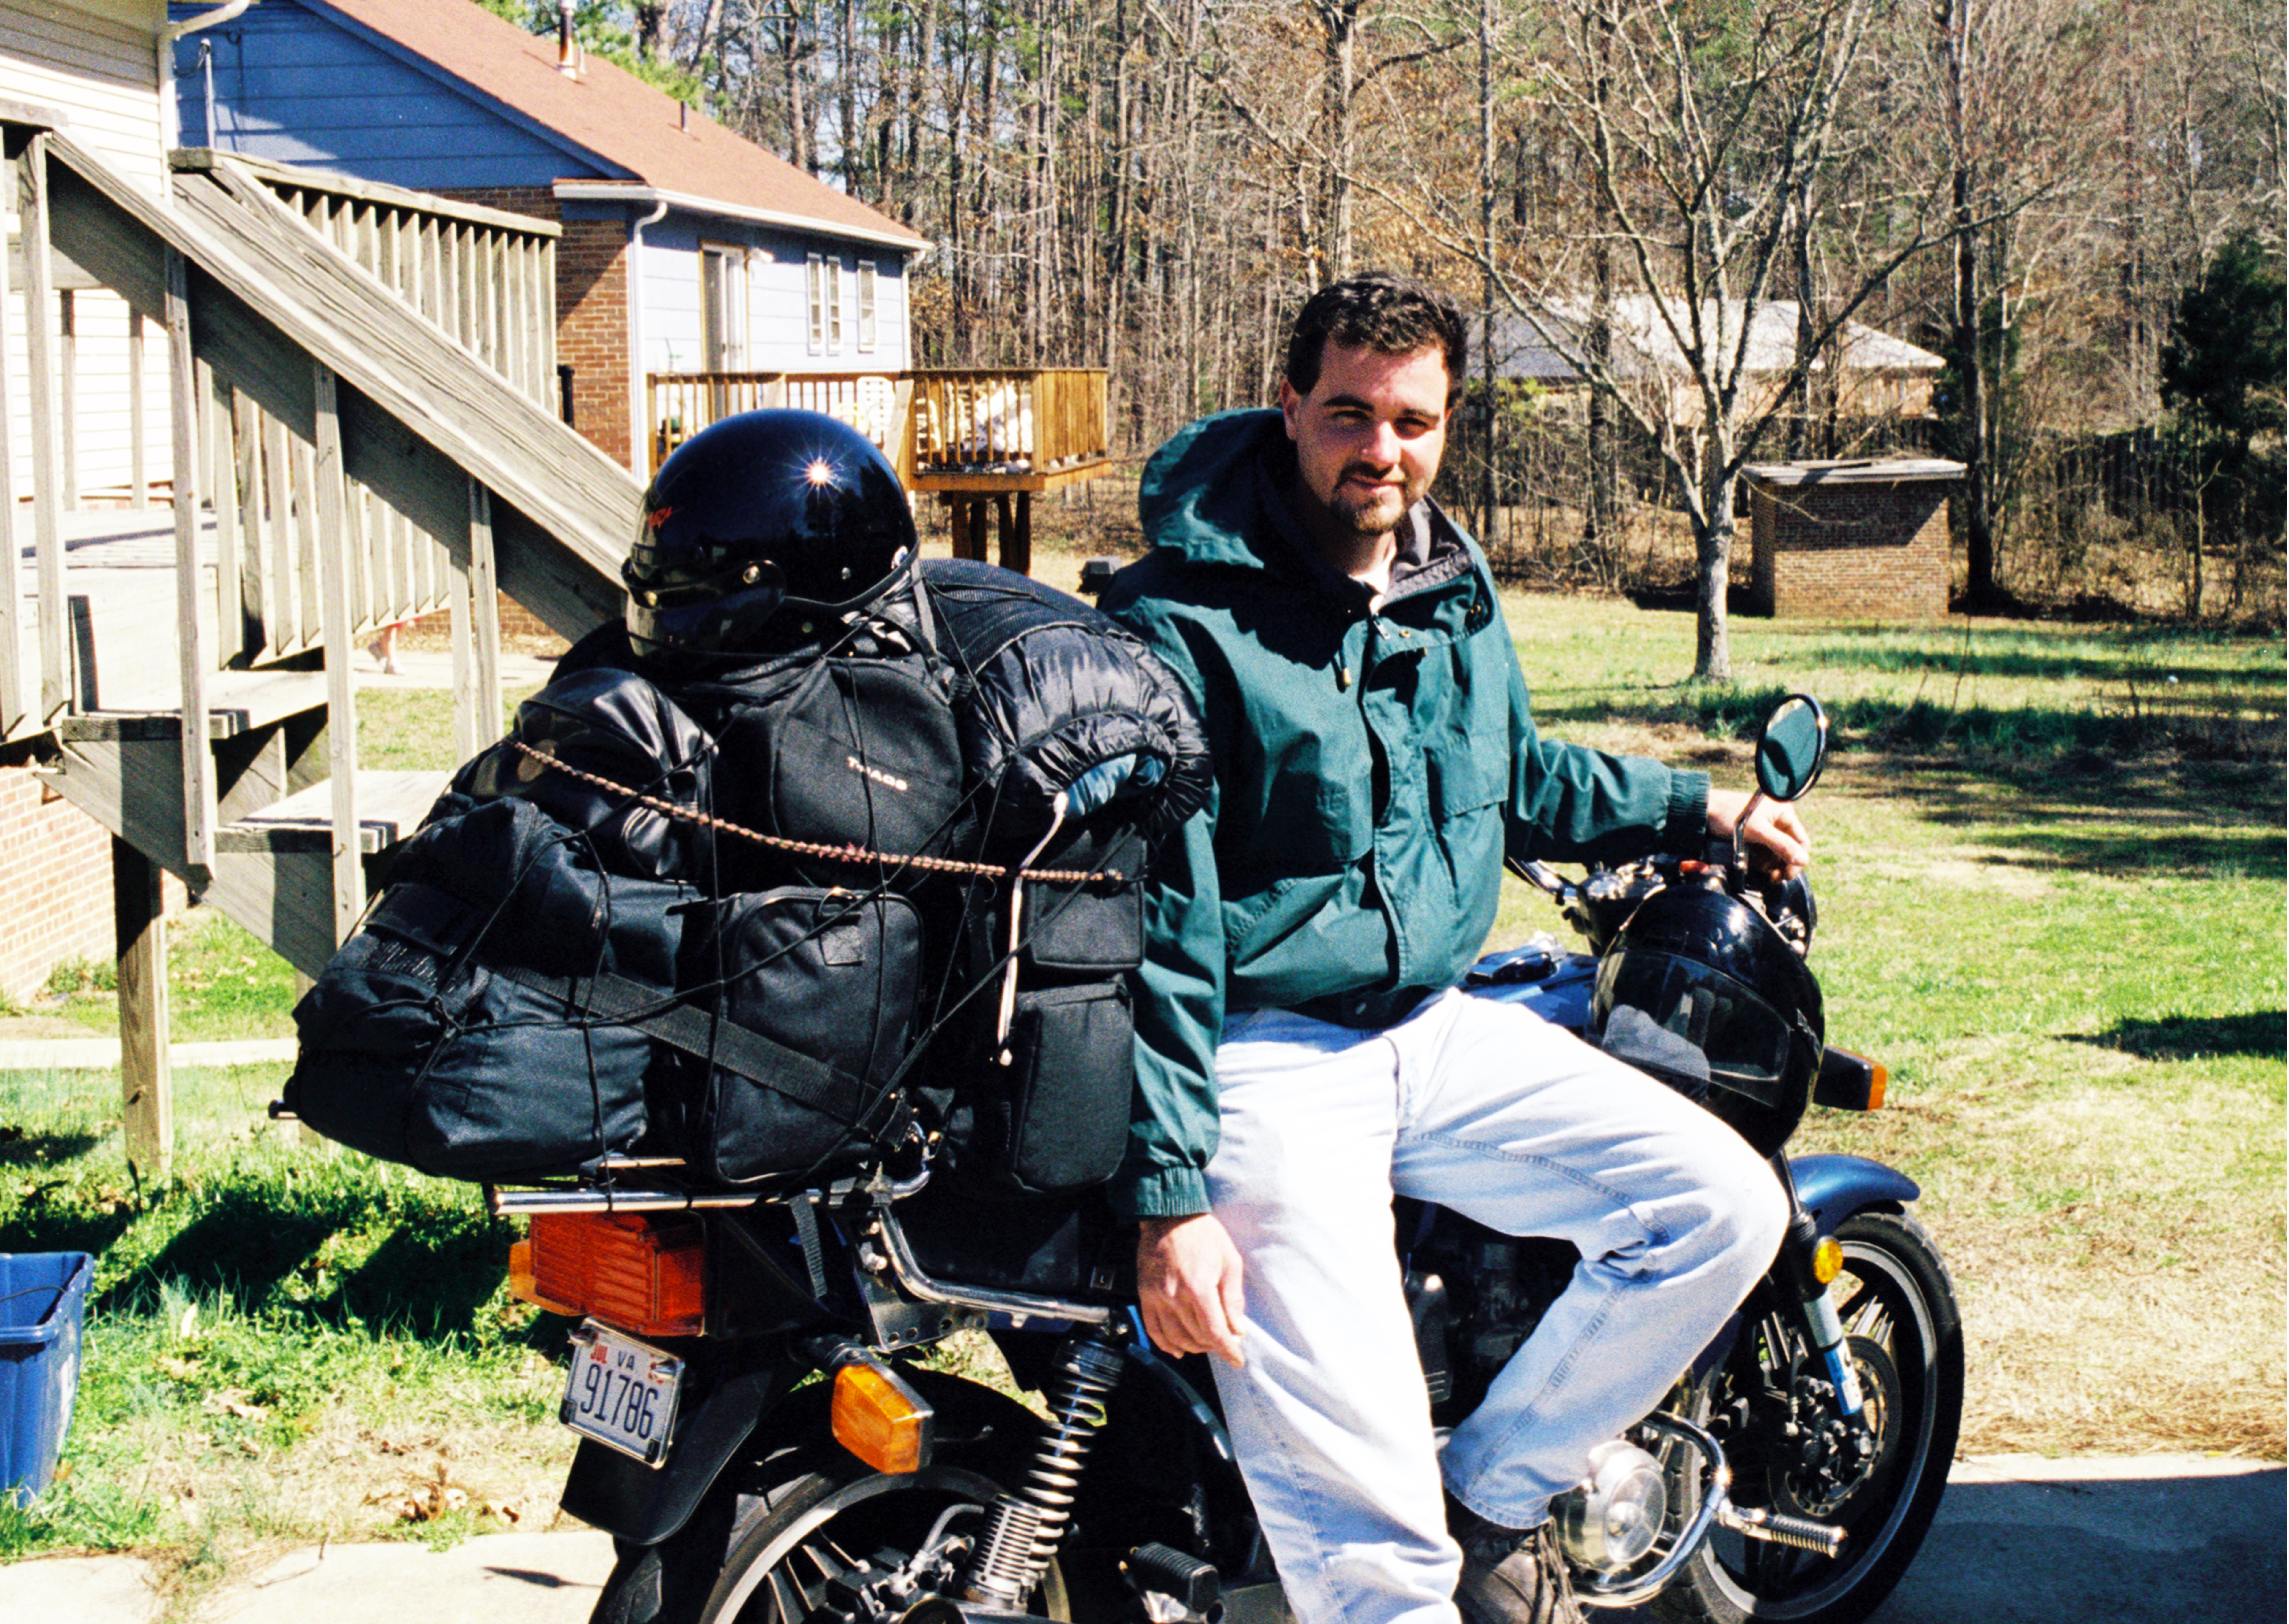 Motorcycle Camping The Basics You Need To Get Out There Revzilla